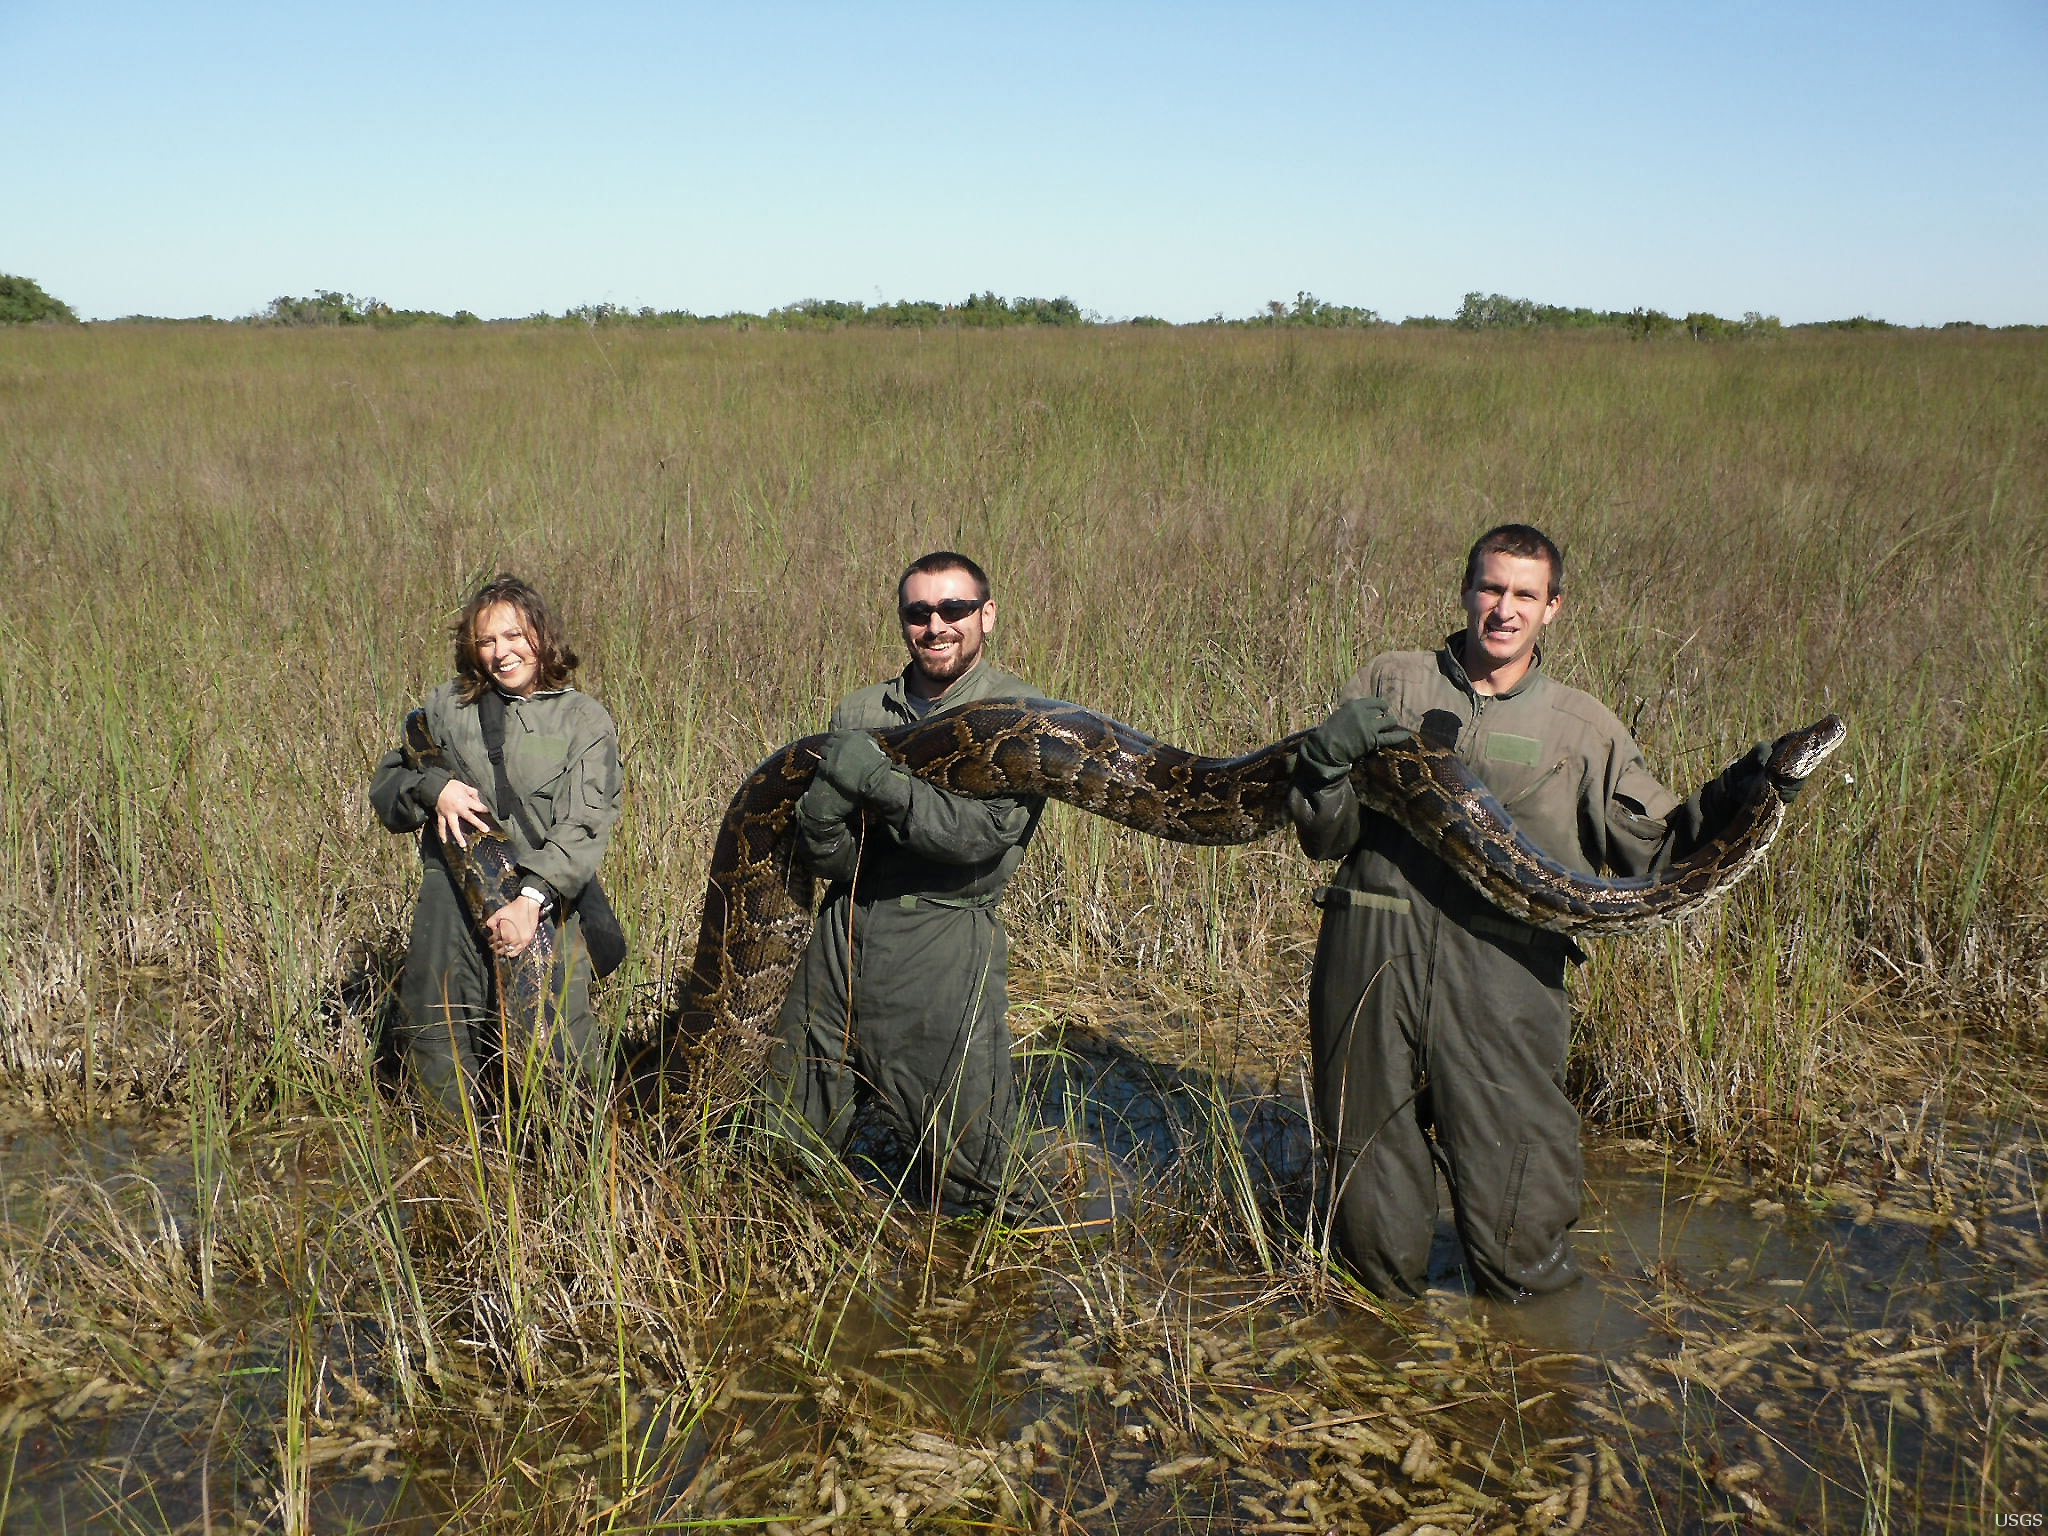 This 162 lb python was captured in the Everglades in 2009.